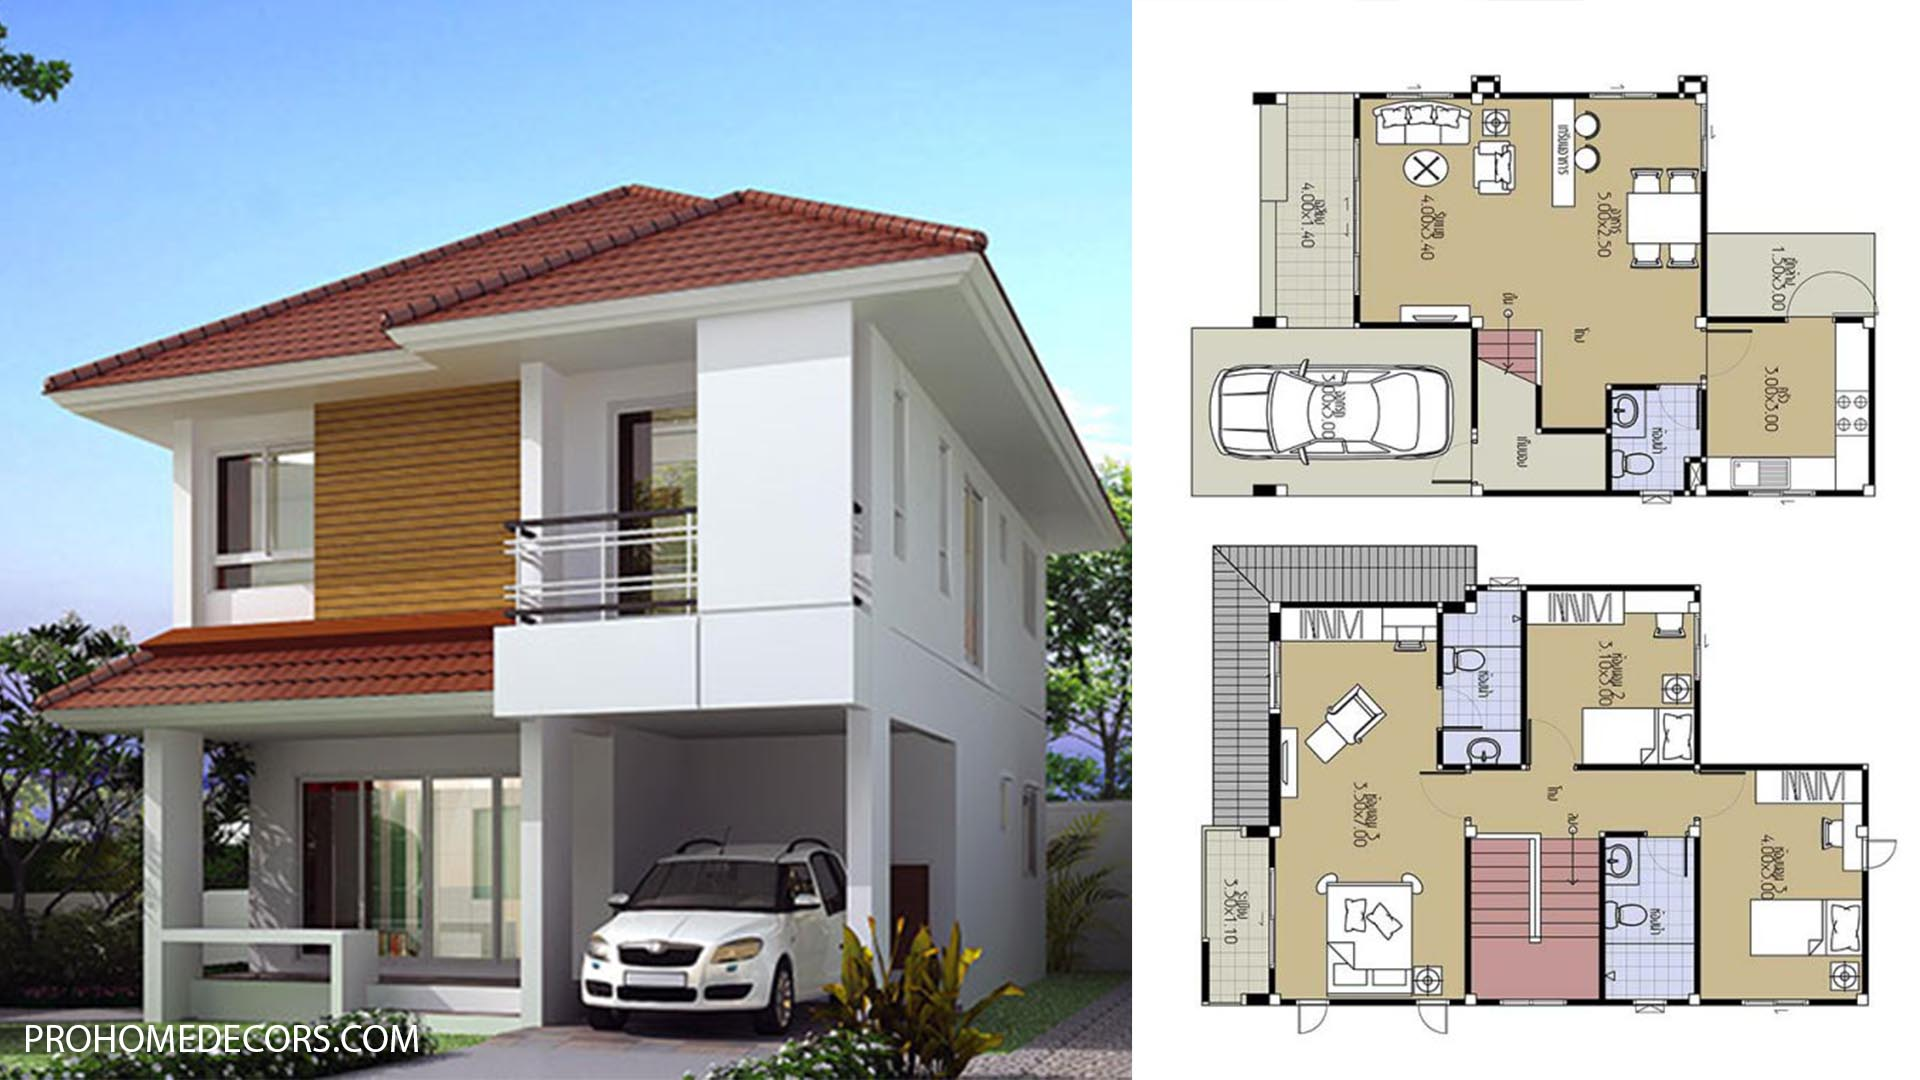 House Plans 7×10.5 with 3 Beds